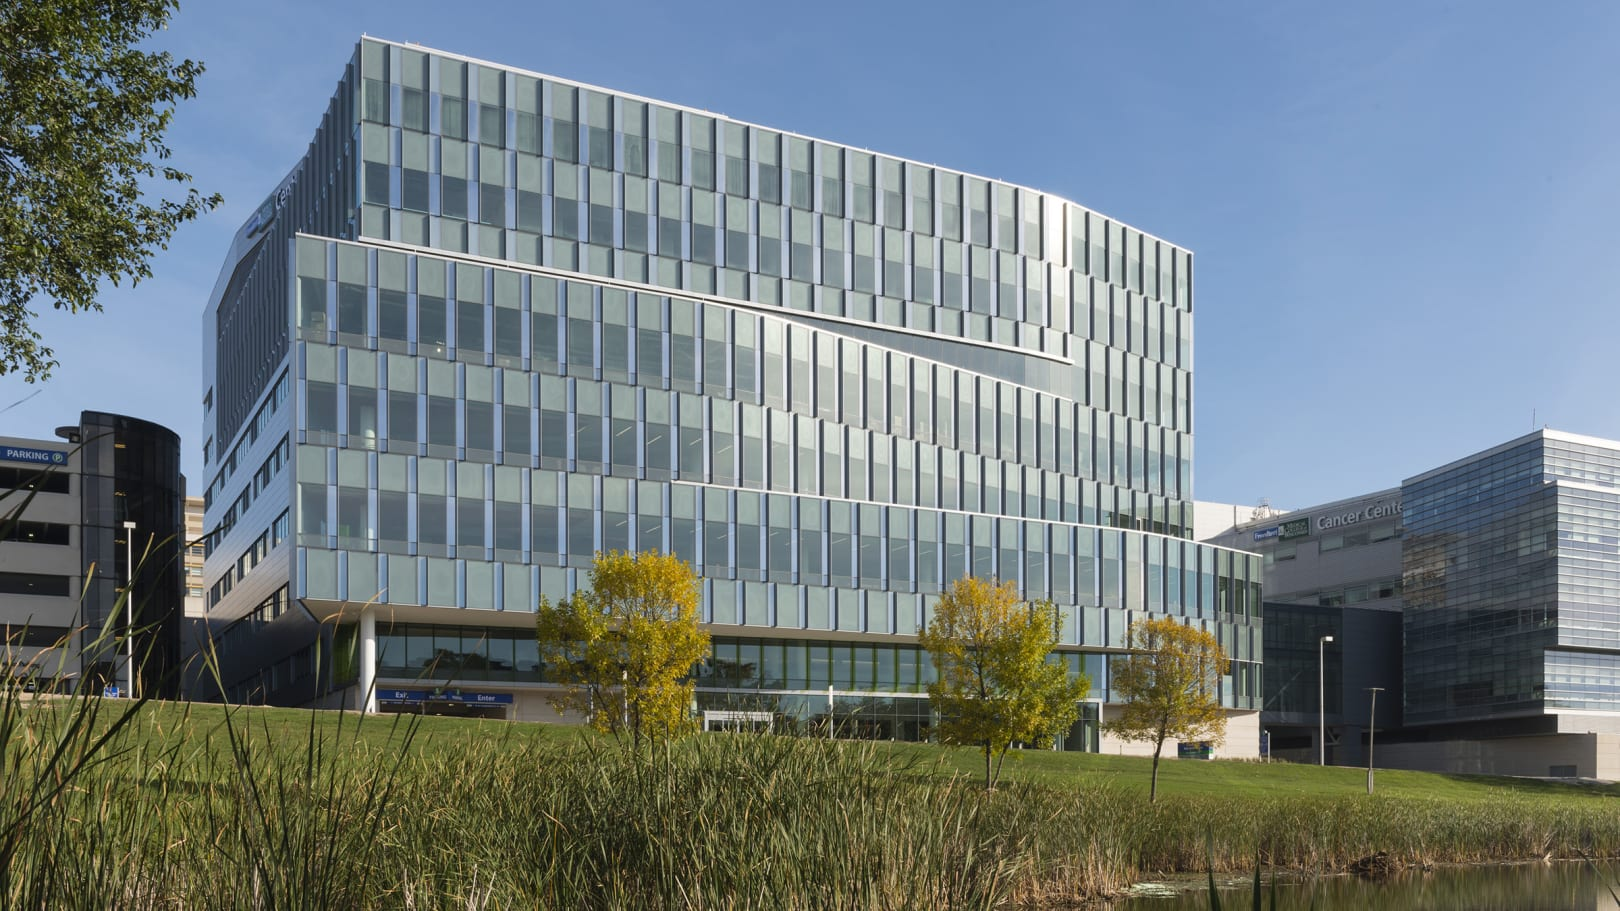 Froedtert & the Medical College of Wisconsin's Center for Advanced Care